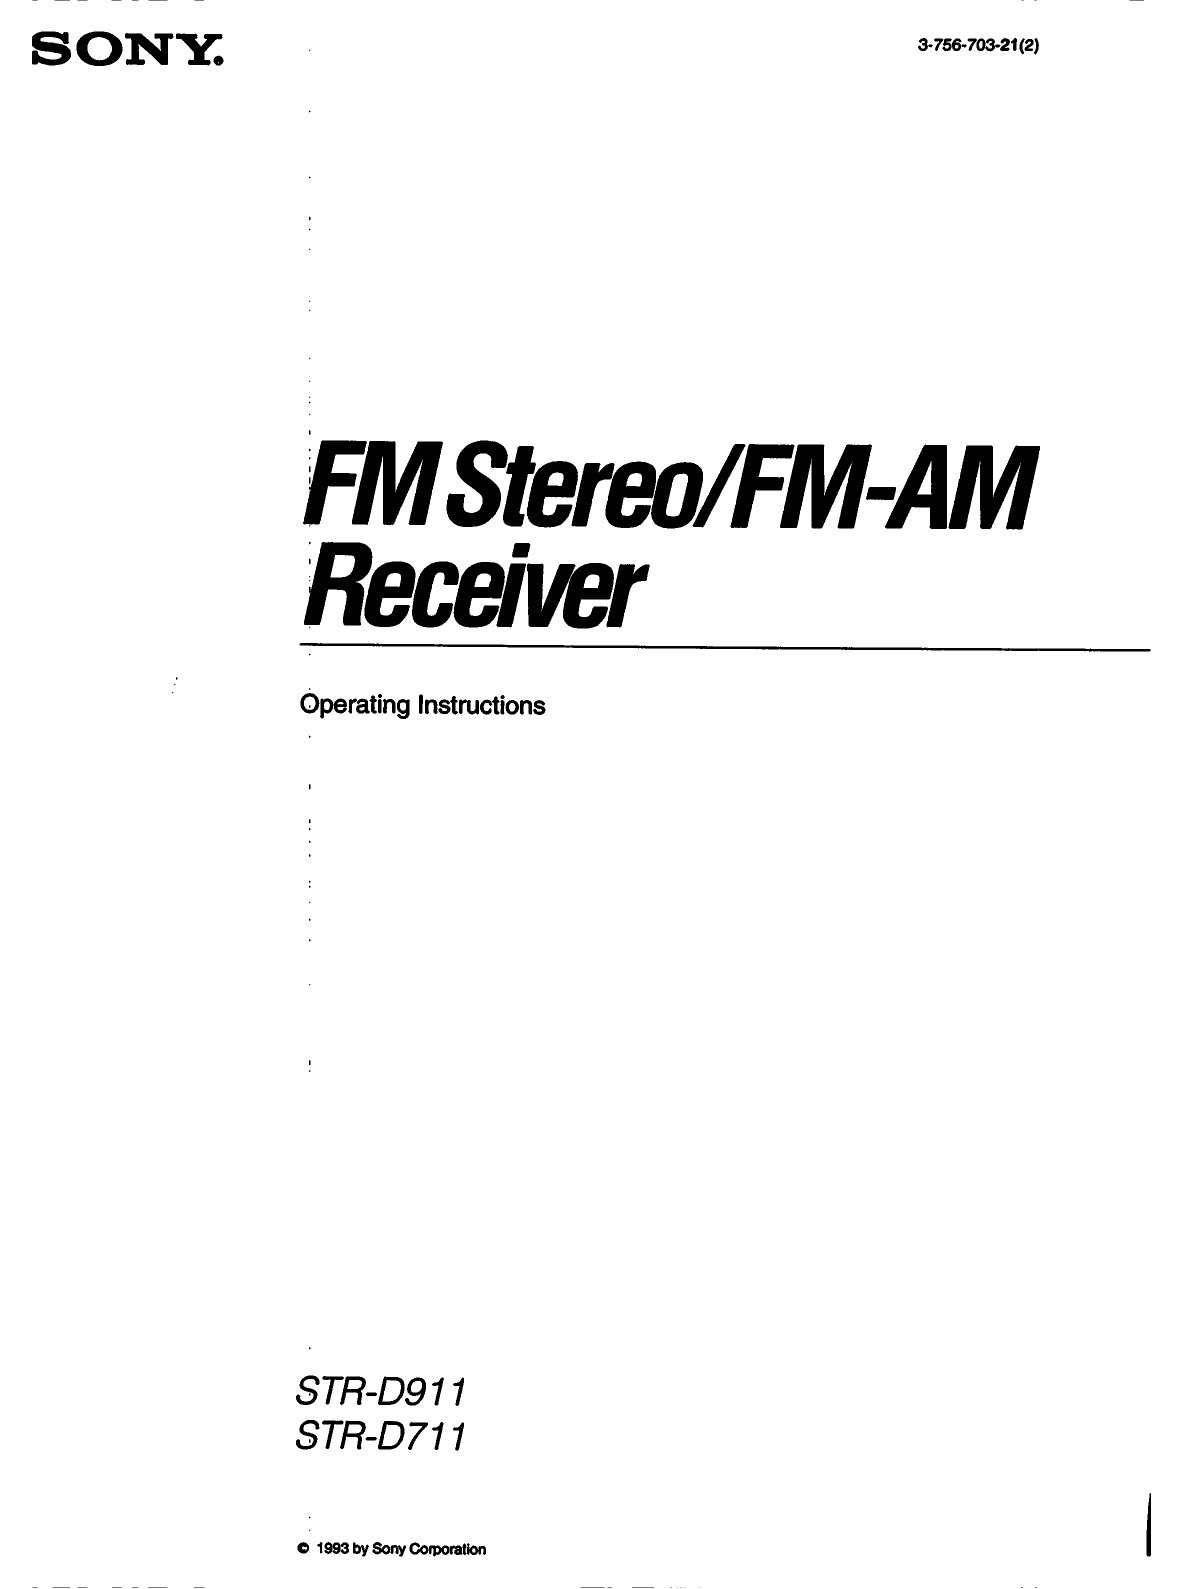 Download free pdf for Sony STR-D711 Receiver manual